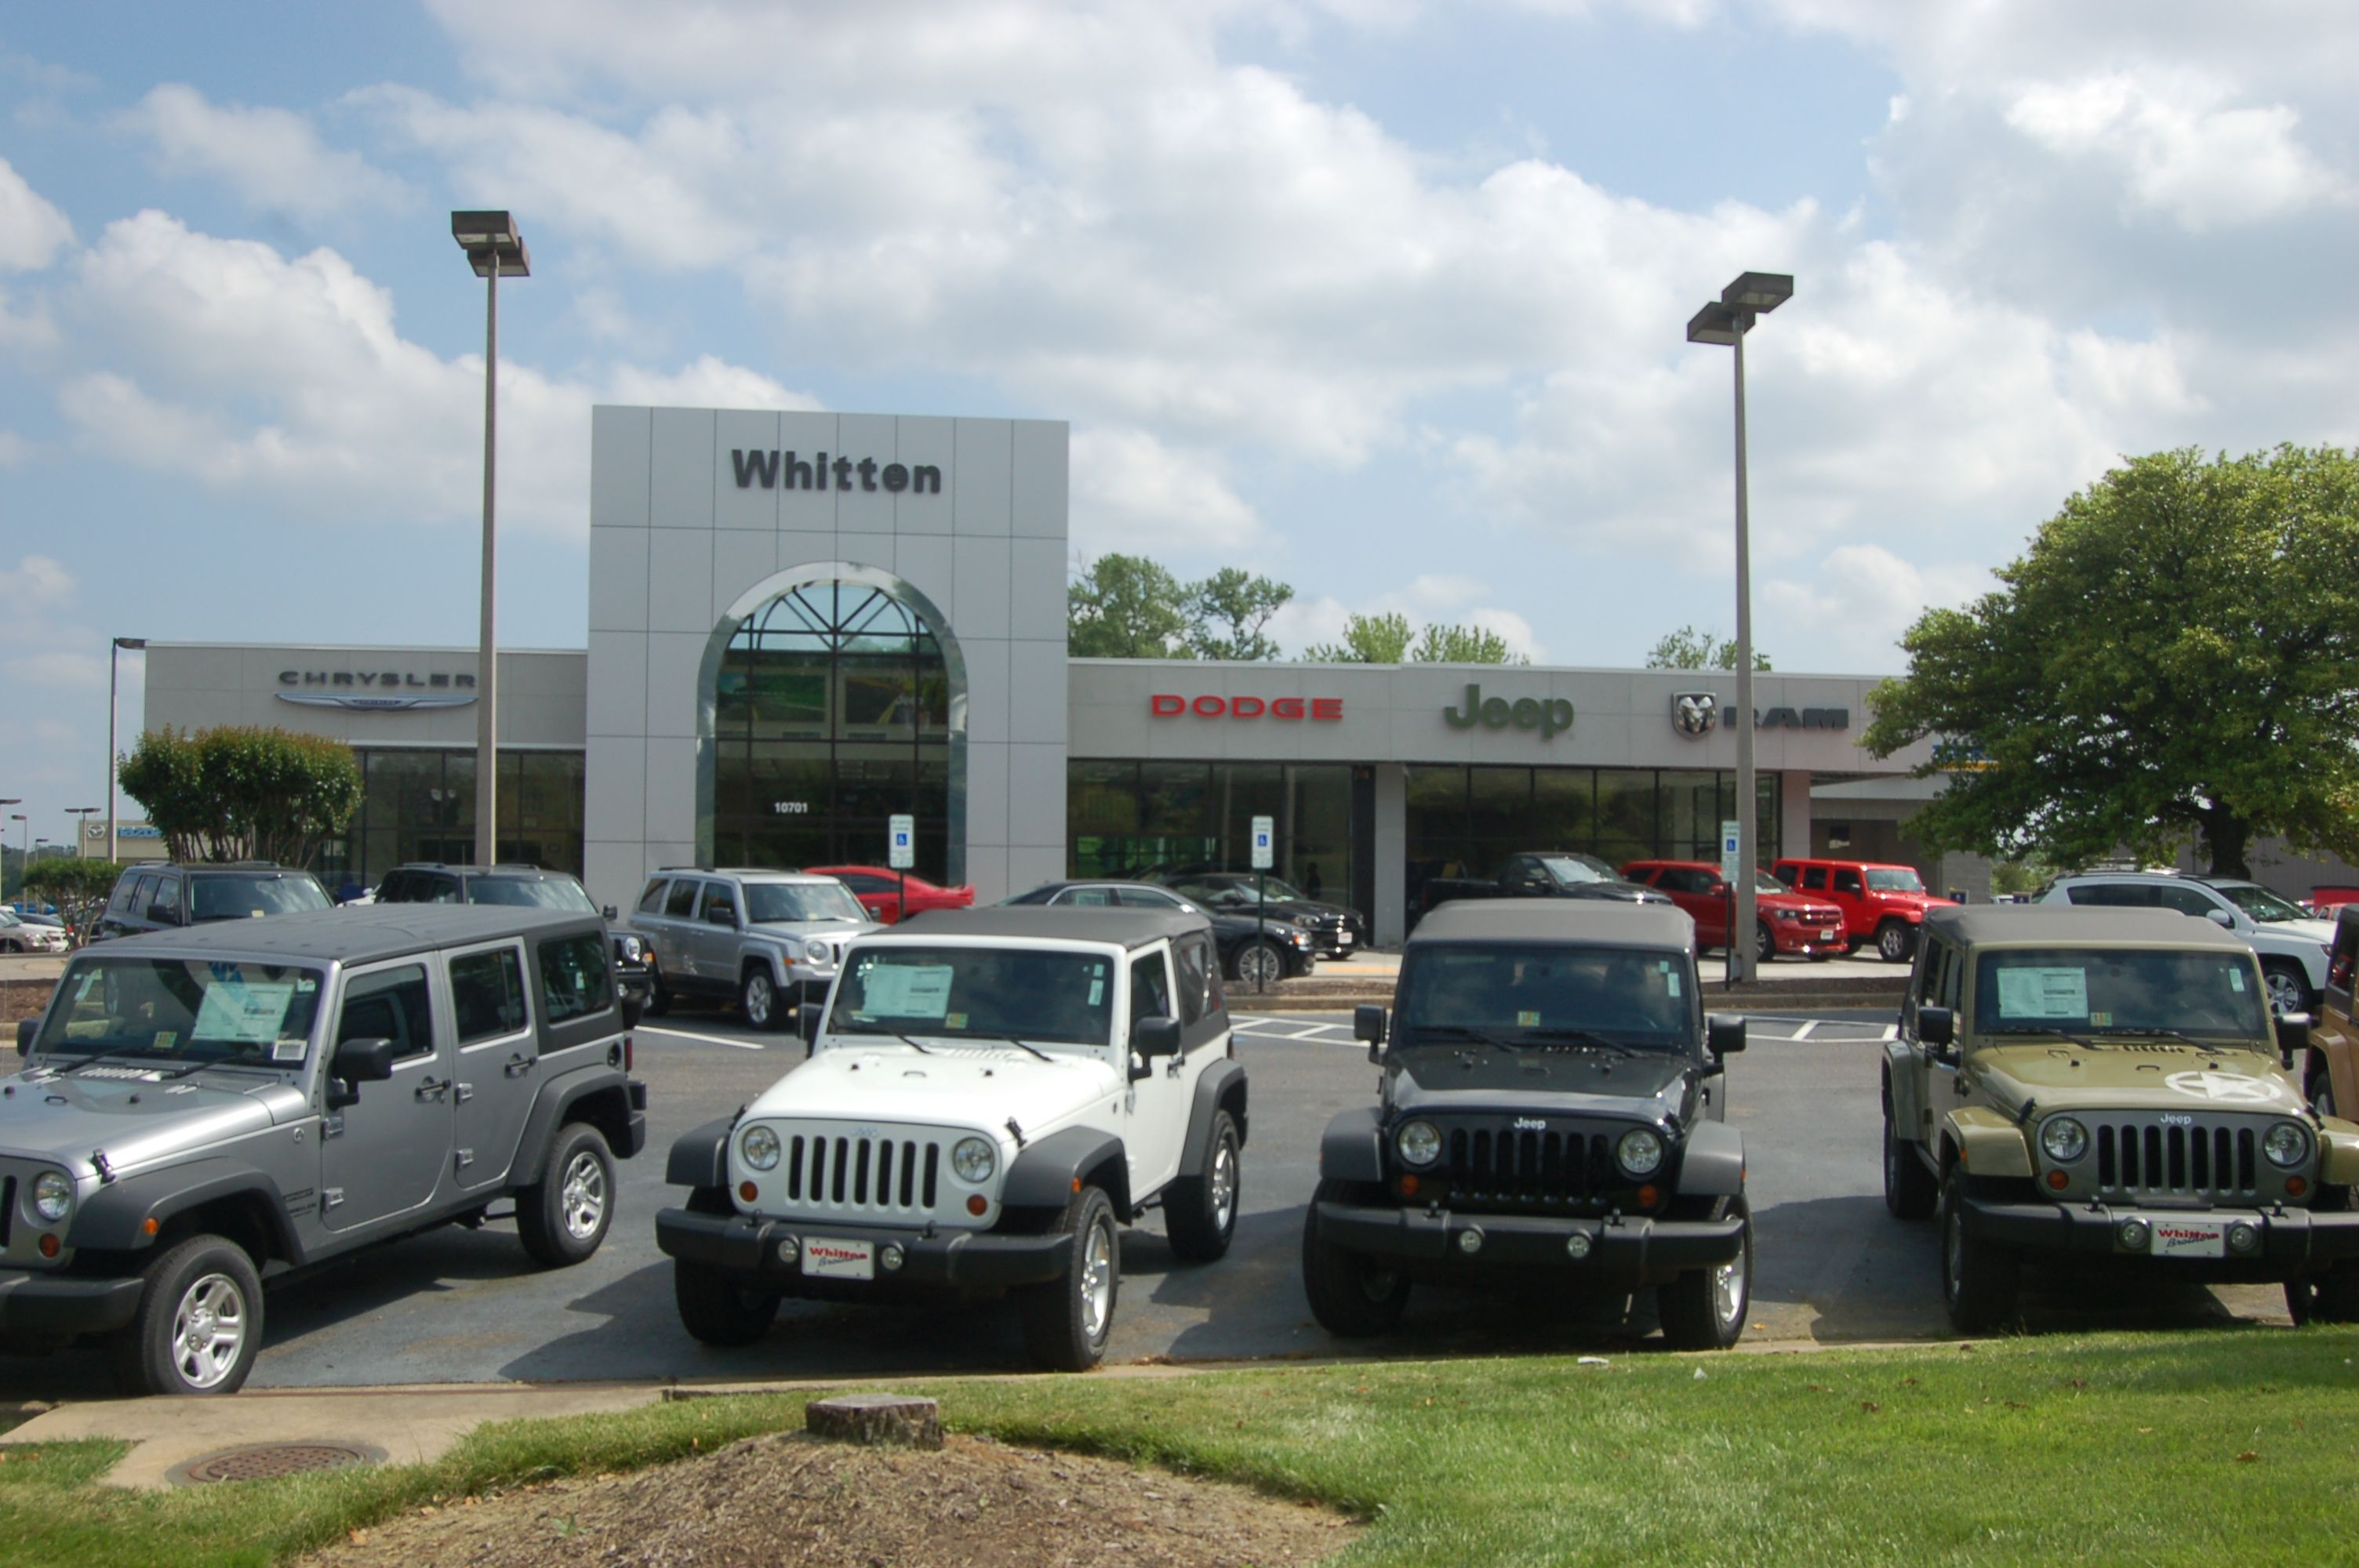 Pearson Jeep Richmond Va Jpeg Httpcarimagescolaycasapearson - Chrysler dealer near me